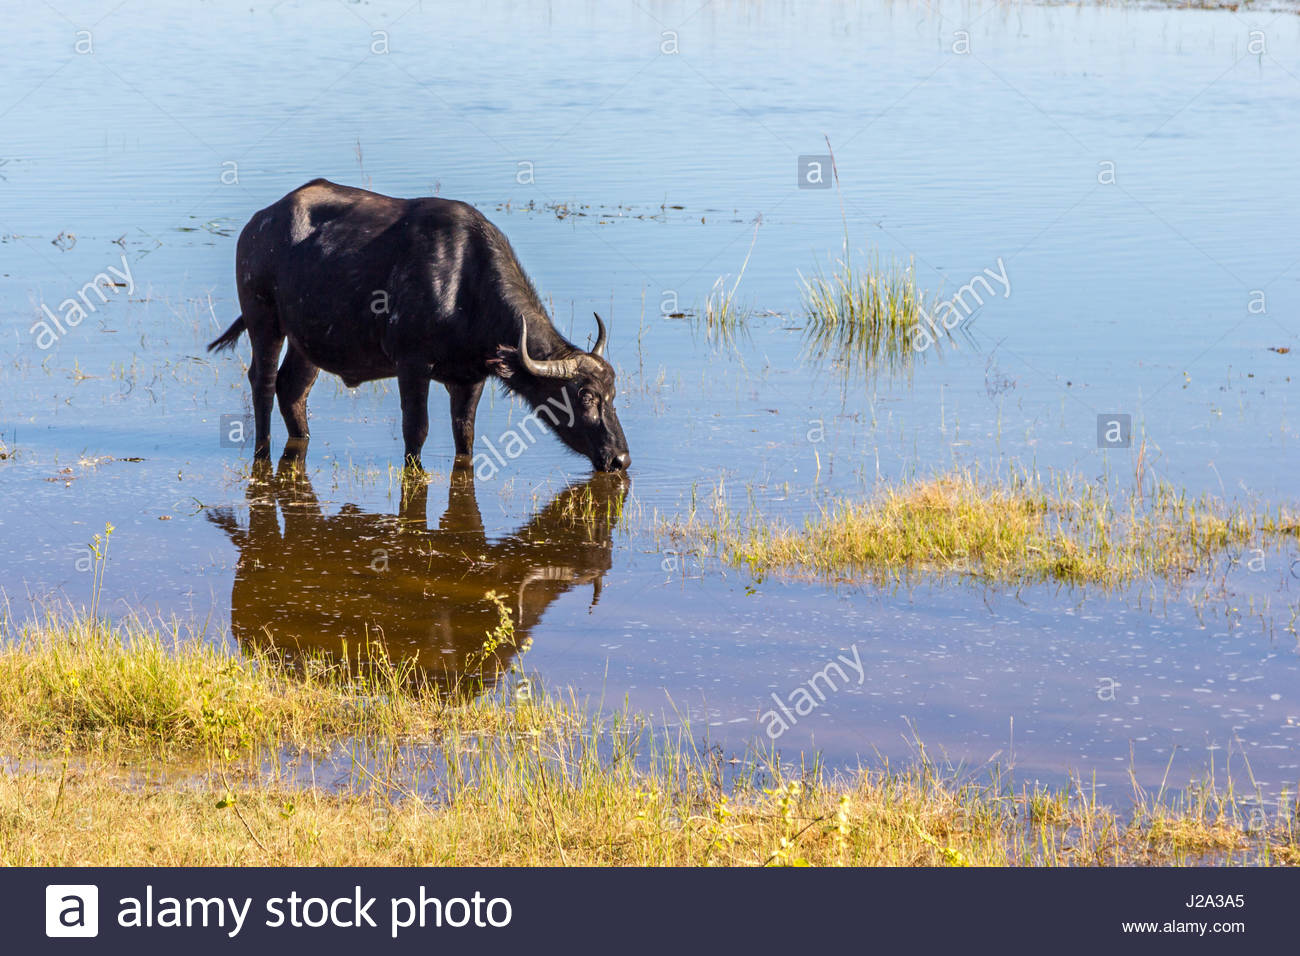 A female Buffalo reflected in still waters at the edge of the Chobe River in the Chobe National Park. - Stock Image